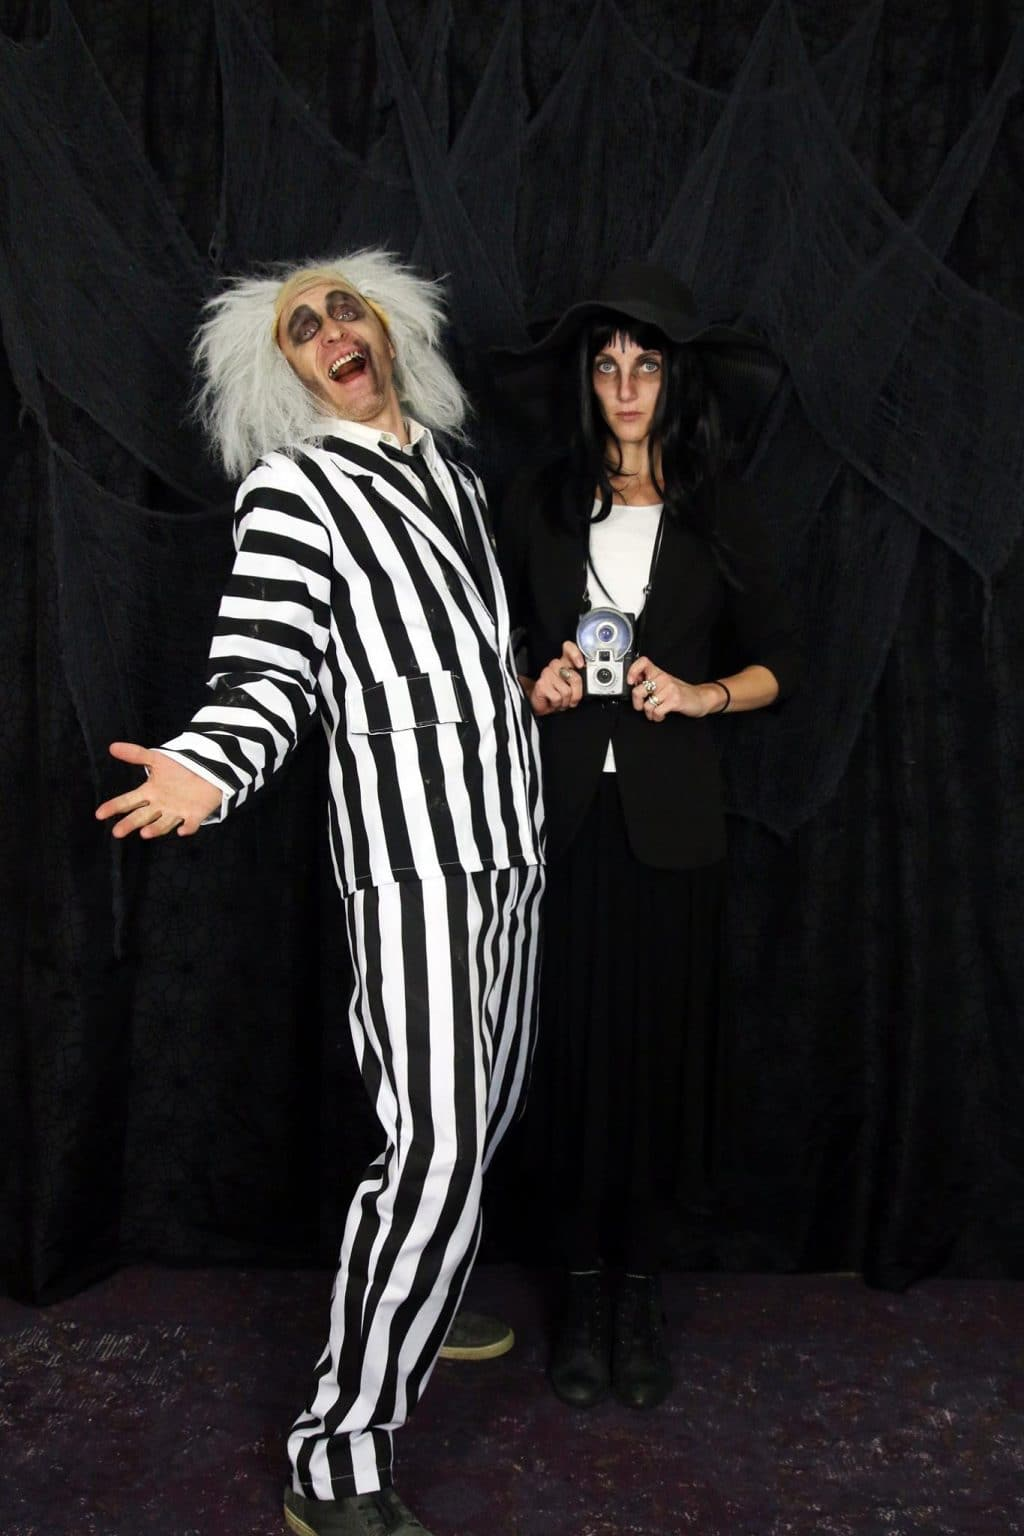 Beetlejuice and Lydia costume!